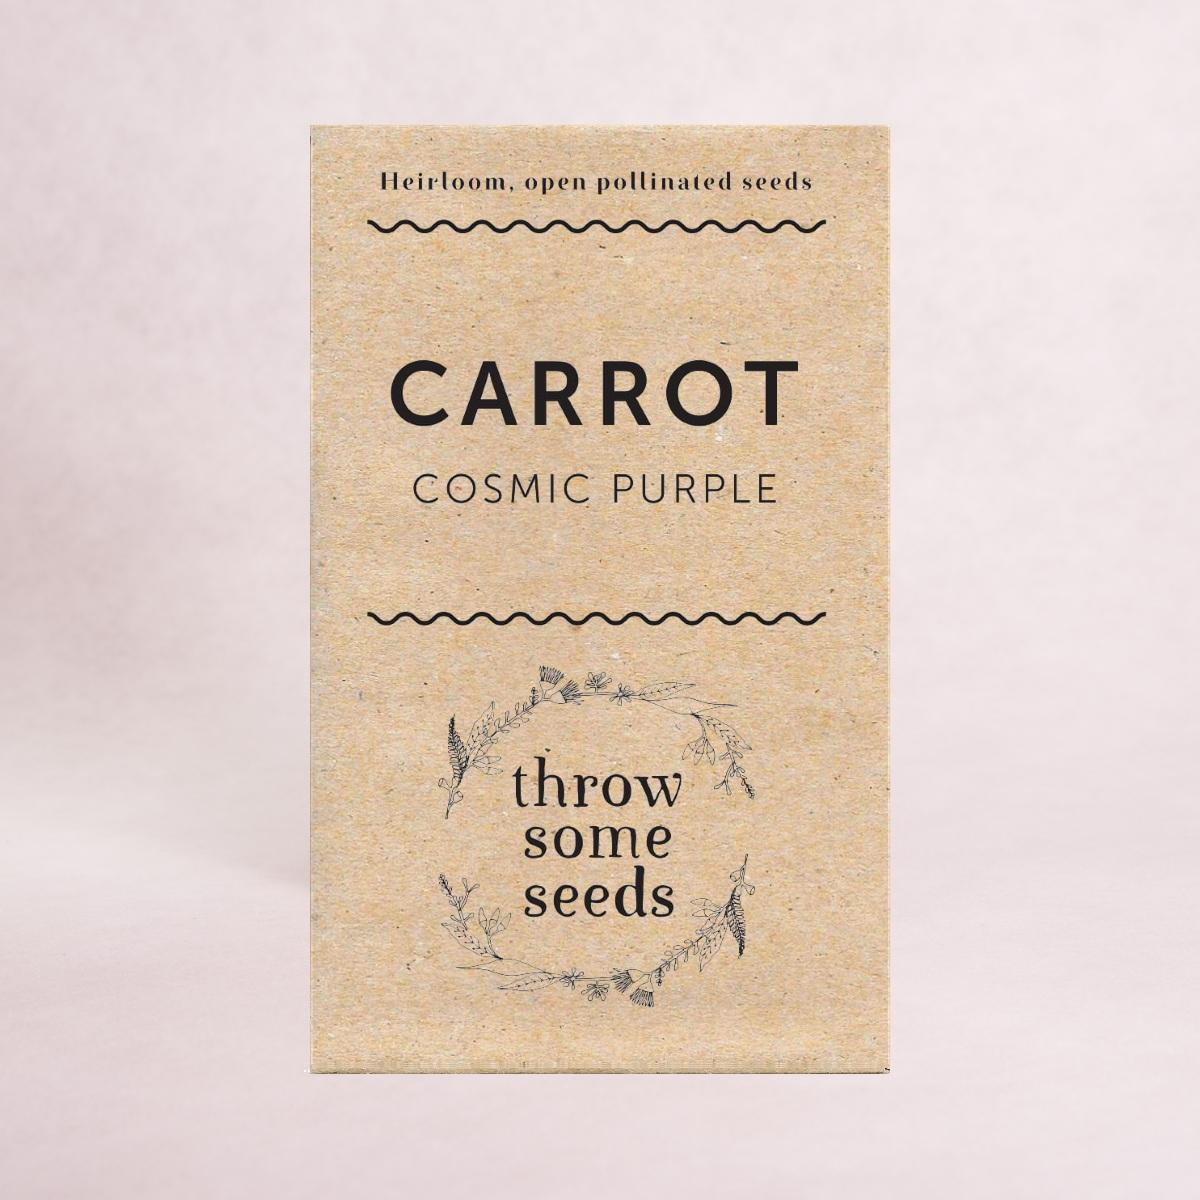 Carrot (Cosmic Purple) Seeds - Seeds - Throw Some Seeds - Australian gardening gifts and eco products online!